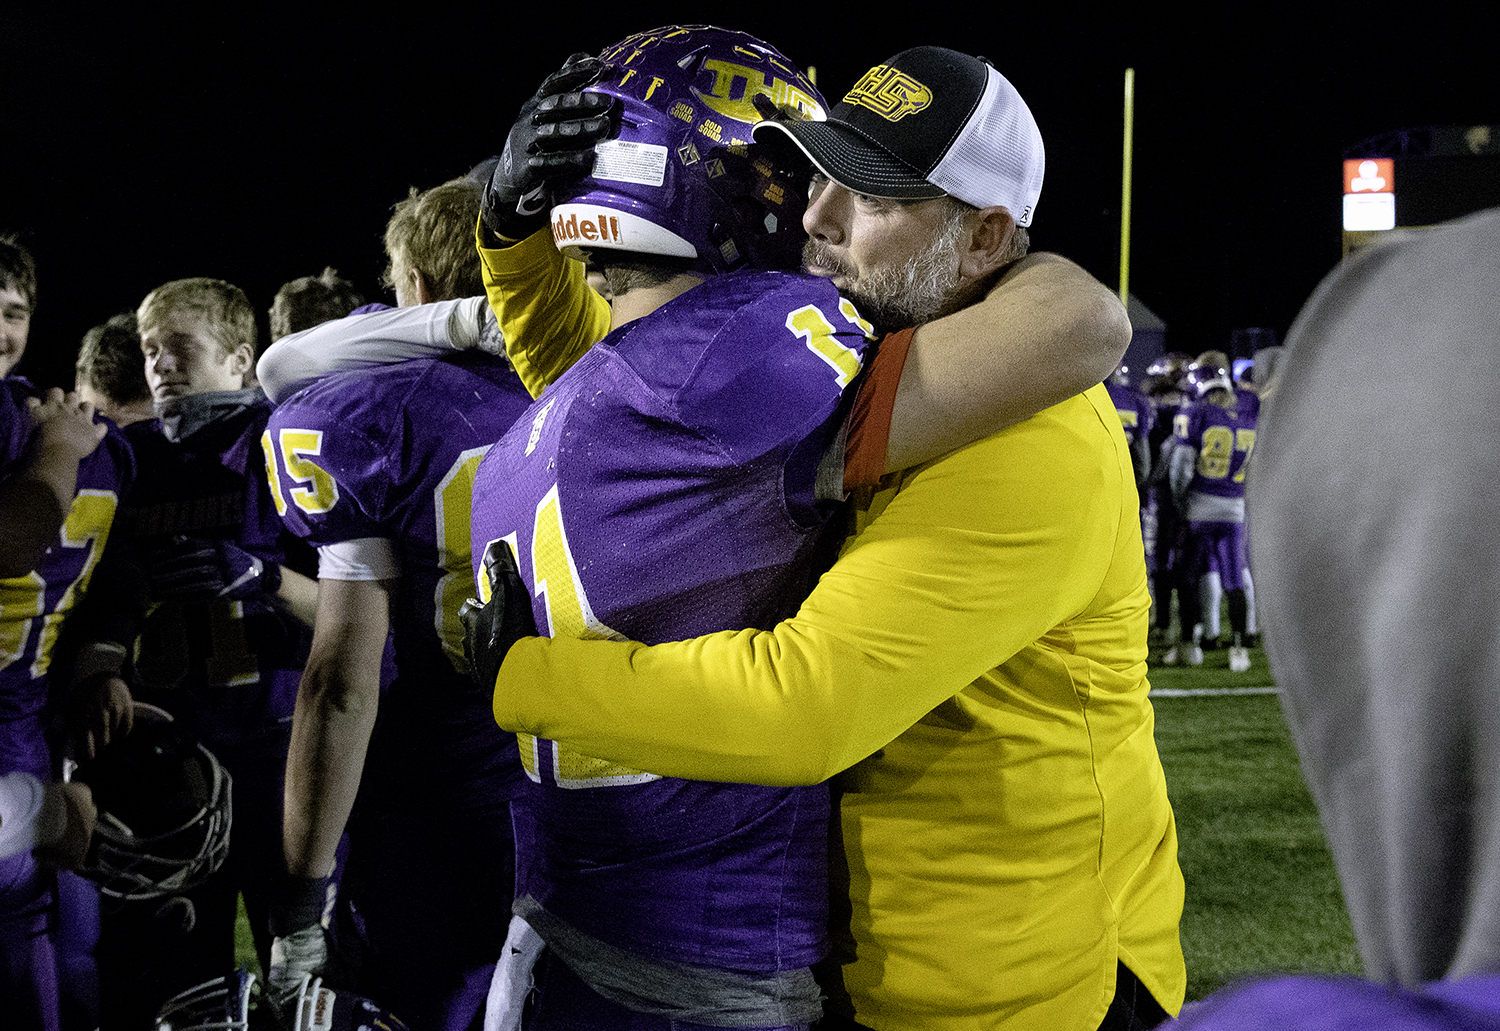 during the Class 4A quarterfinals in Taylorville Saturday, Nov. 10, 2018. [Ted Schurter/The State Journal-Register]